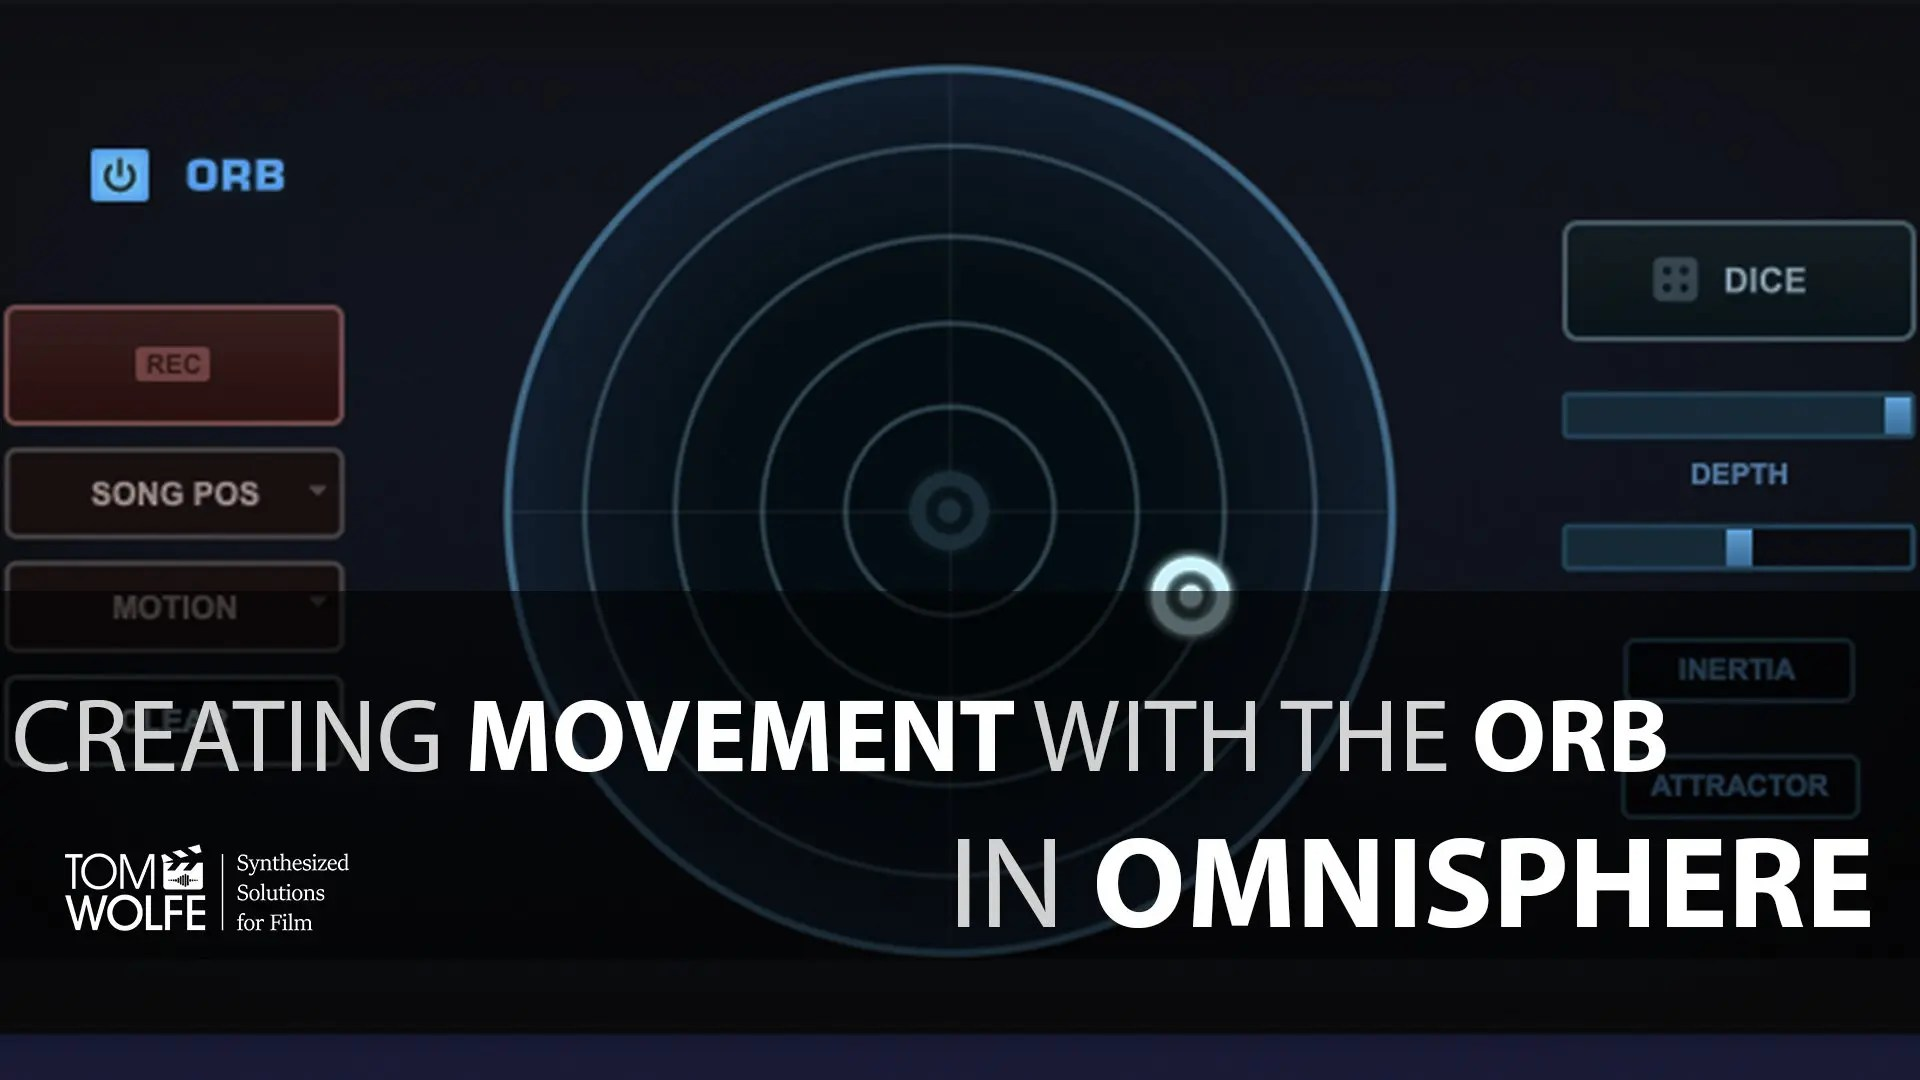 Tutorial: How to Create Movement with the Orb in Omnisphere